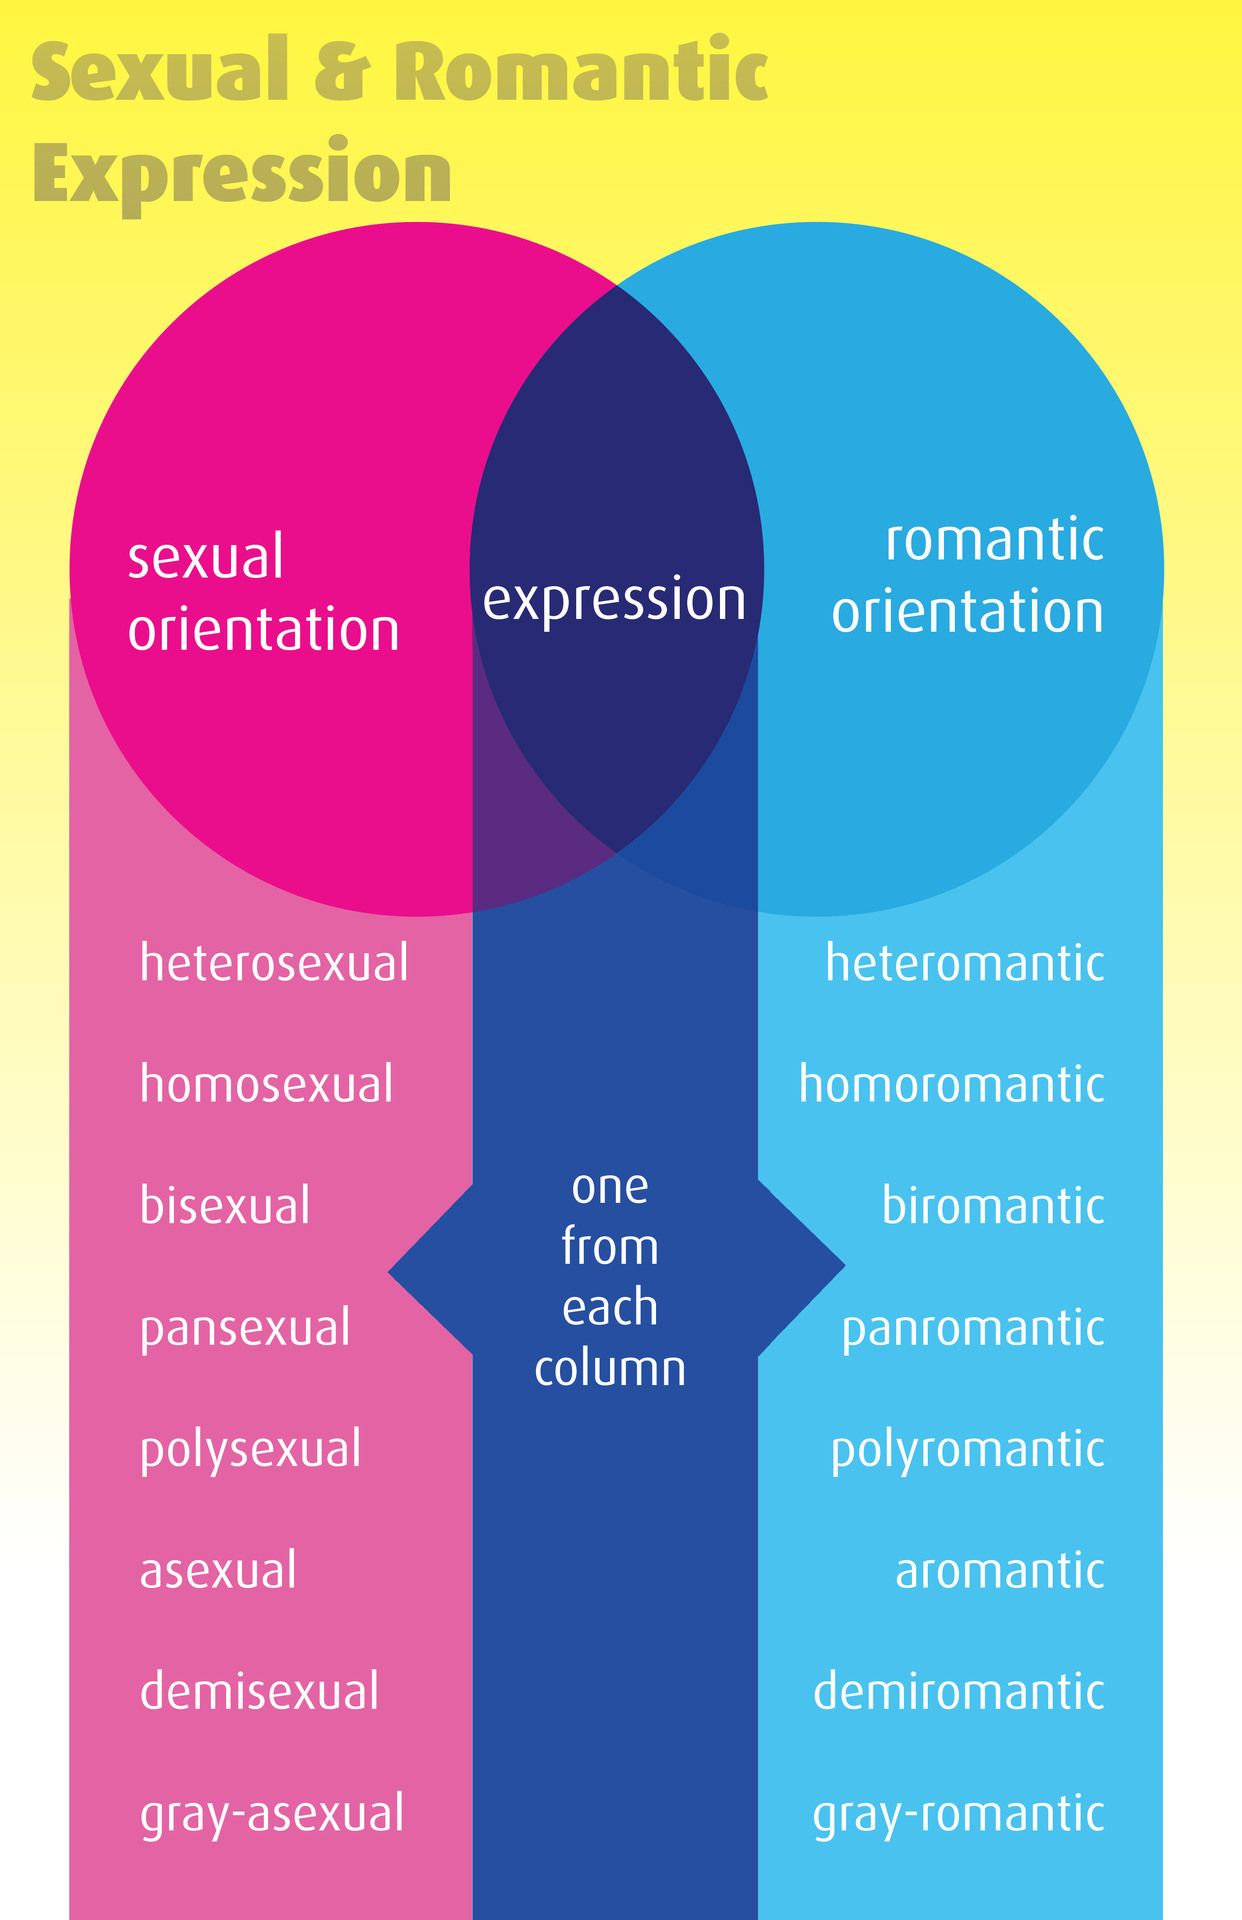 Demiromantic homosexual advance